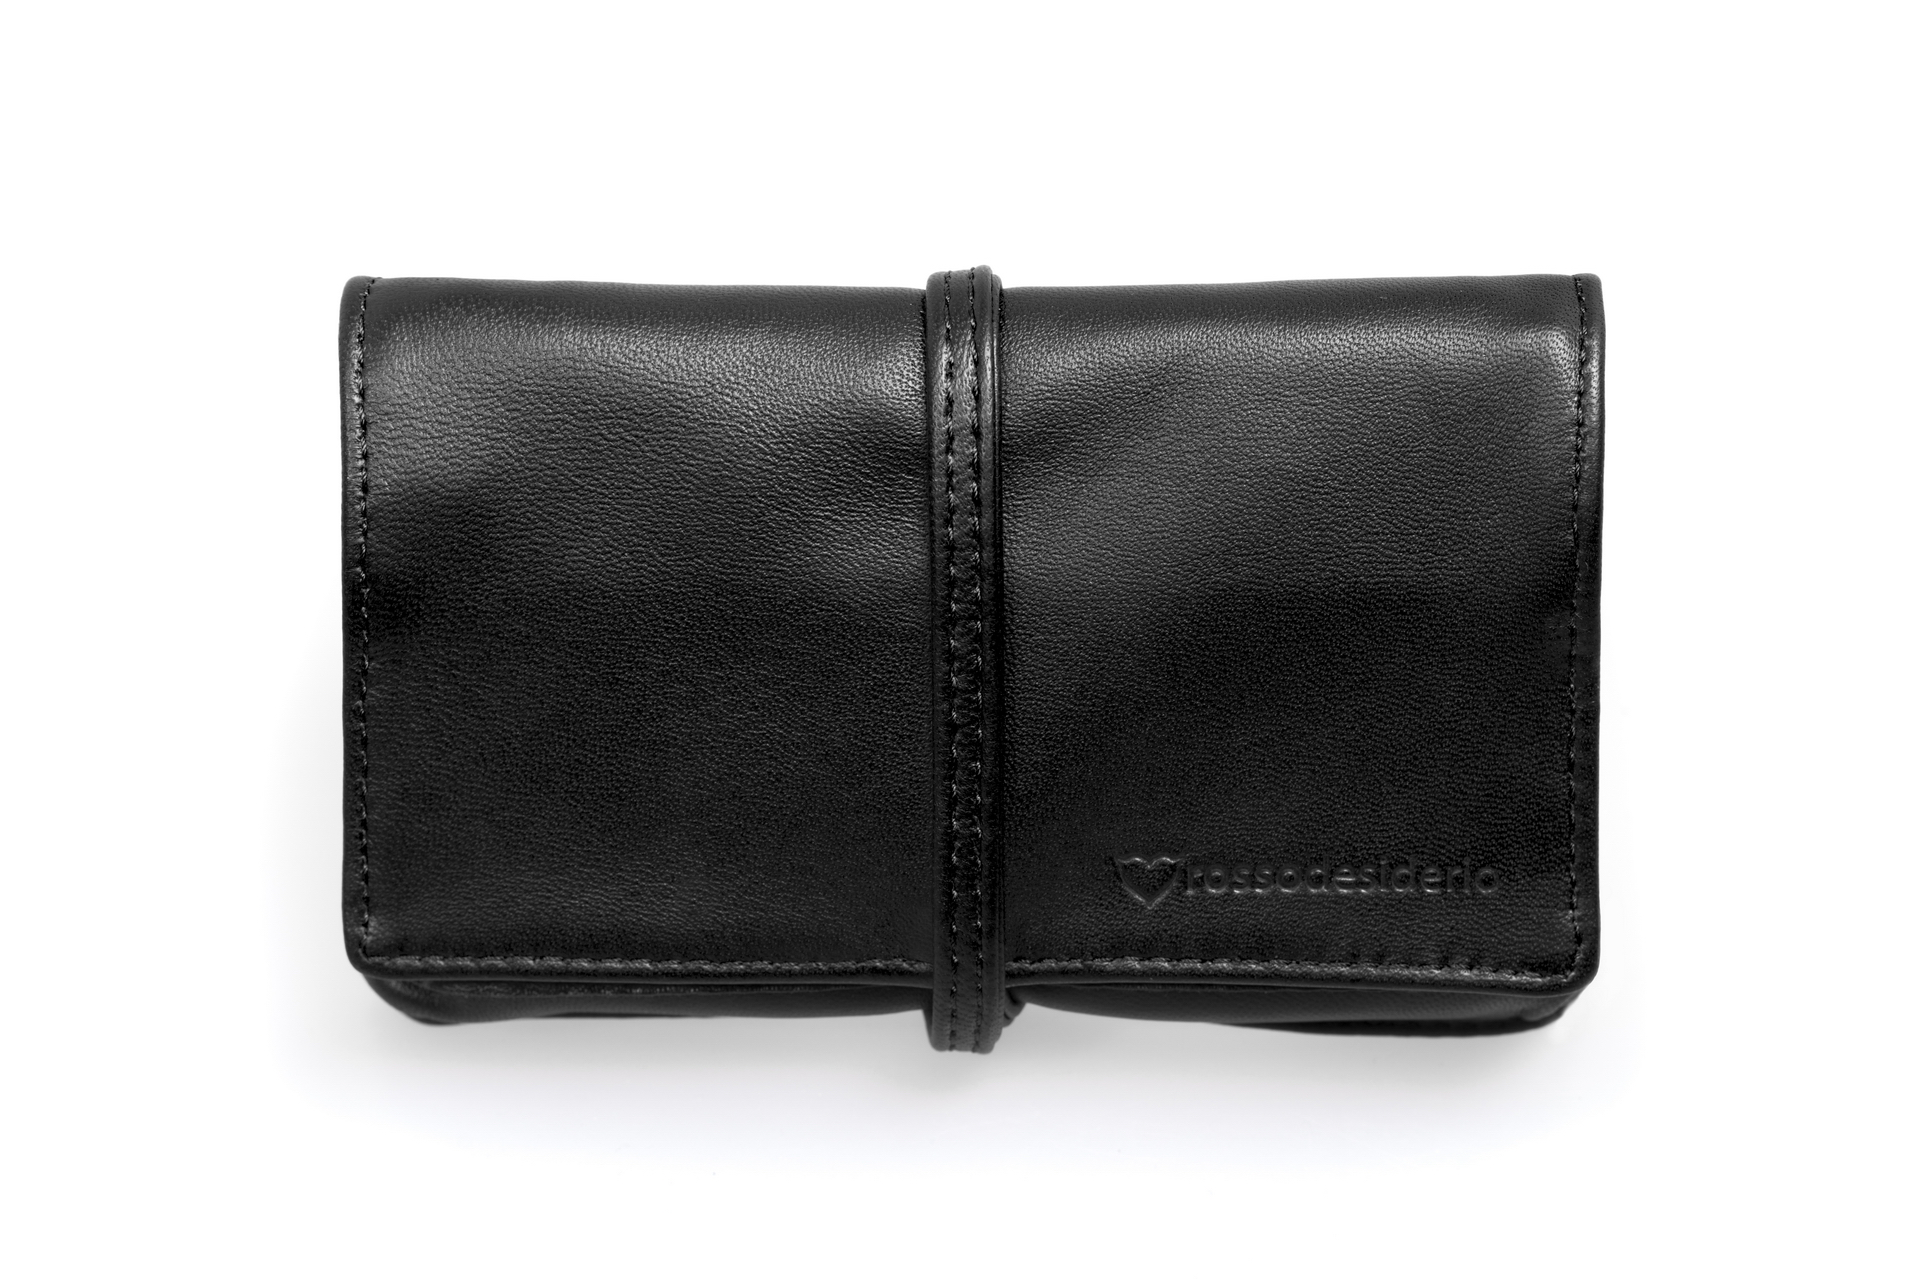 Real leather black tobacco pouch